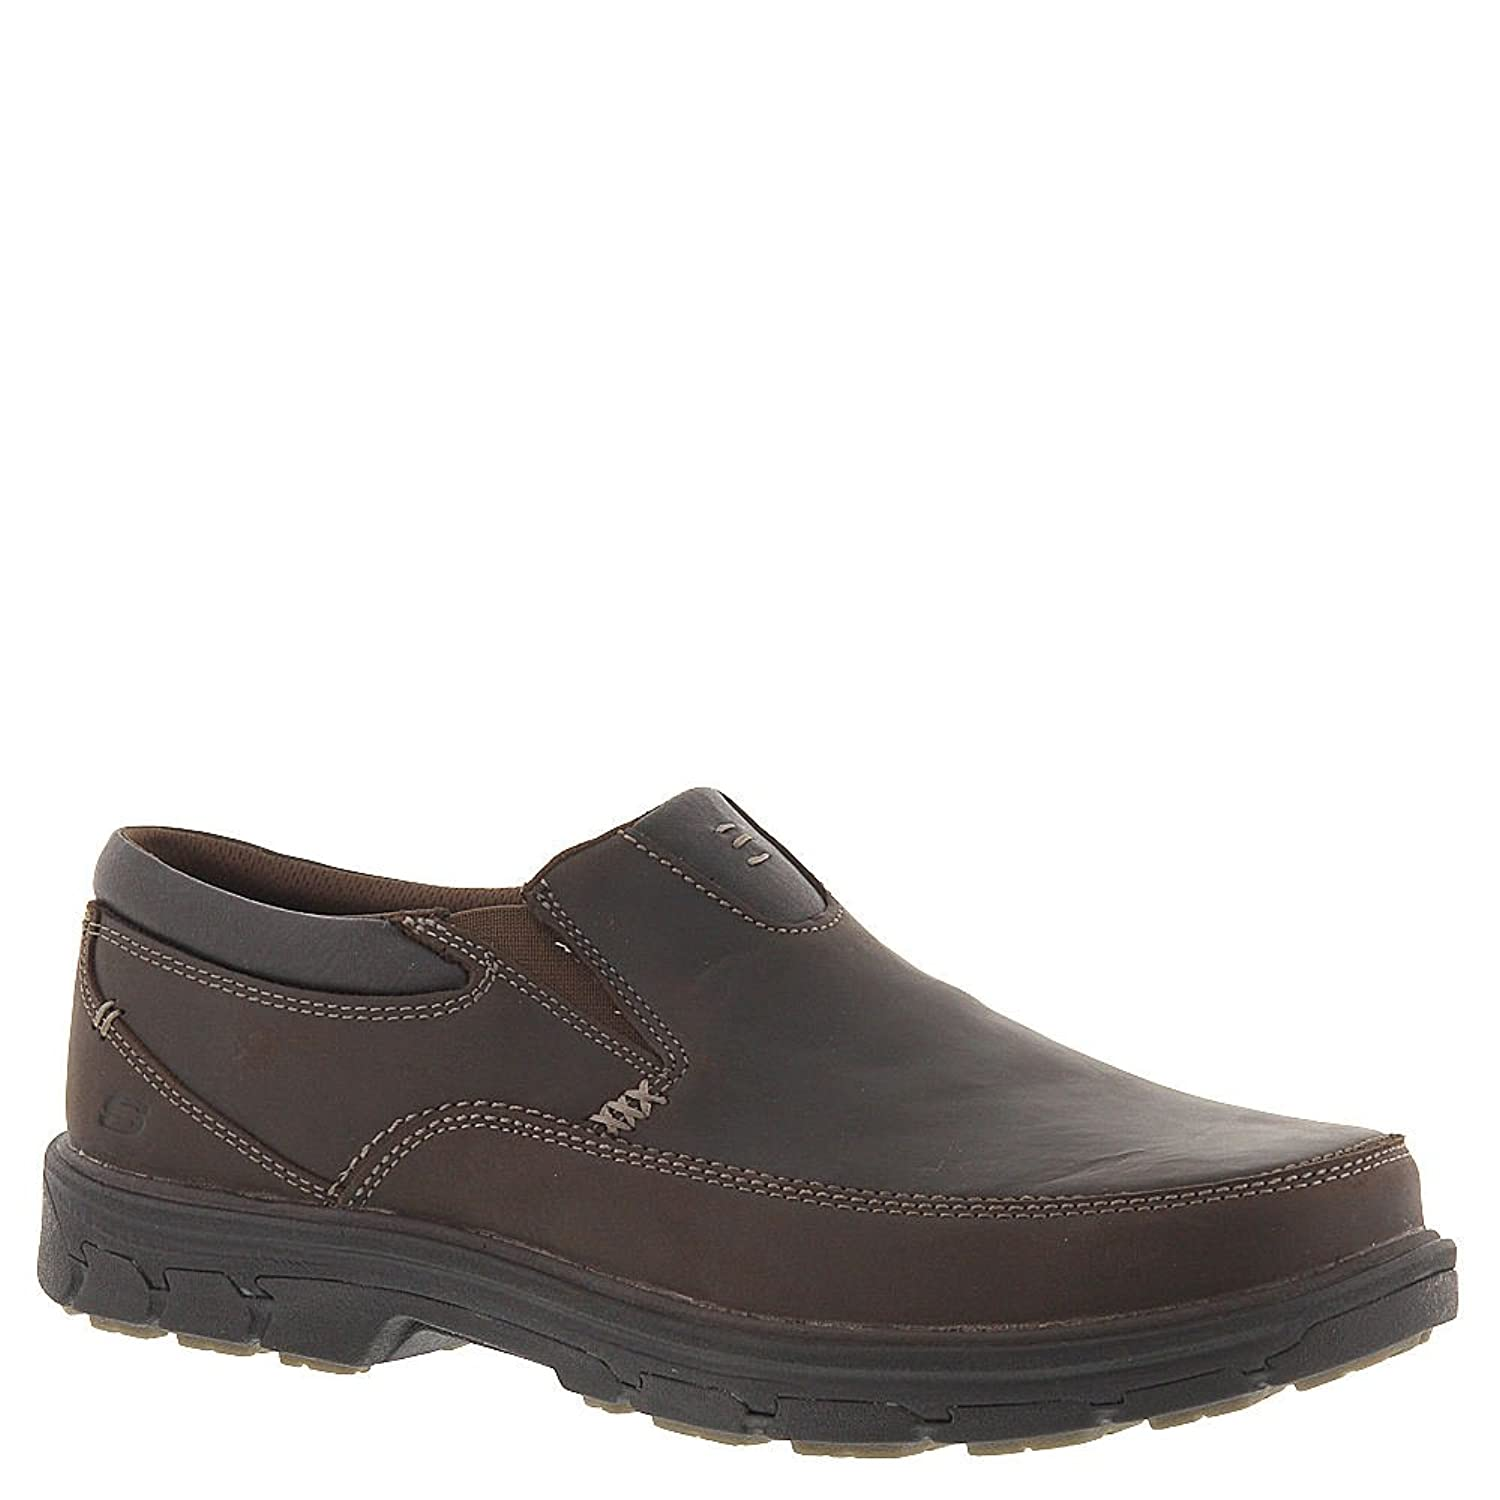 Skechers U S A Segment- The Search (Men's) vnHzZ6kNT